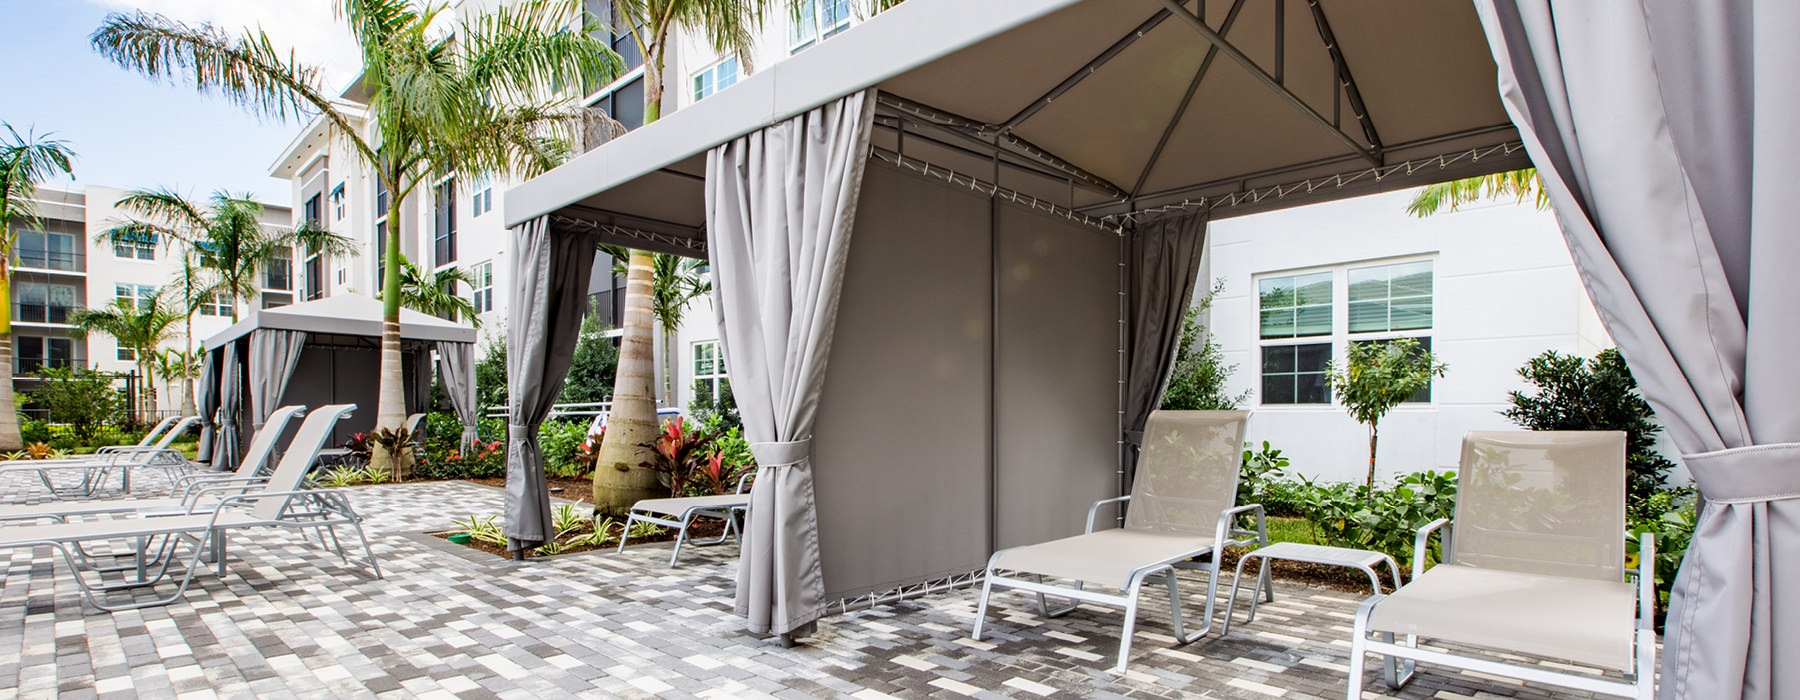 cabanas with lounge chairs